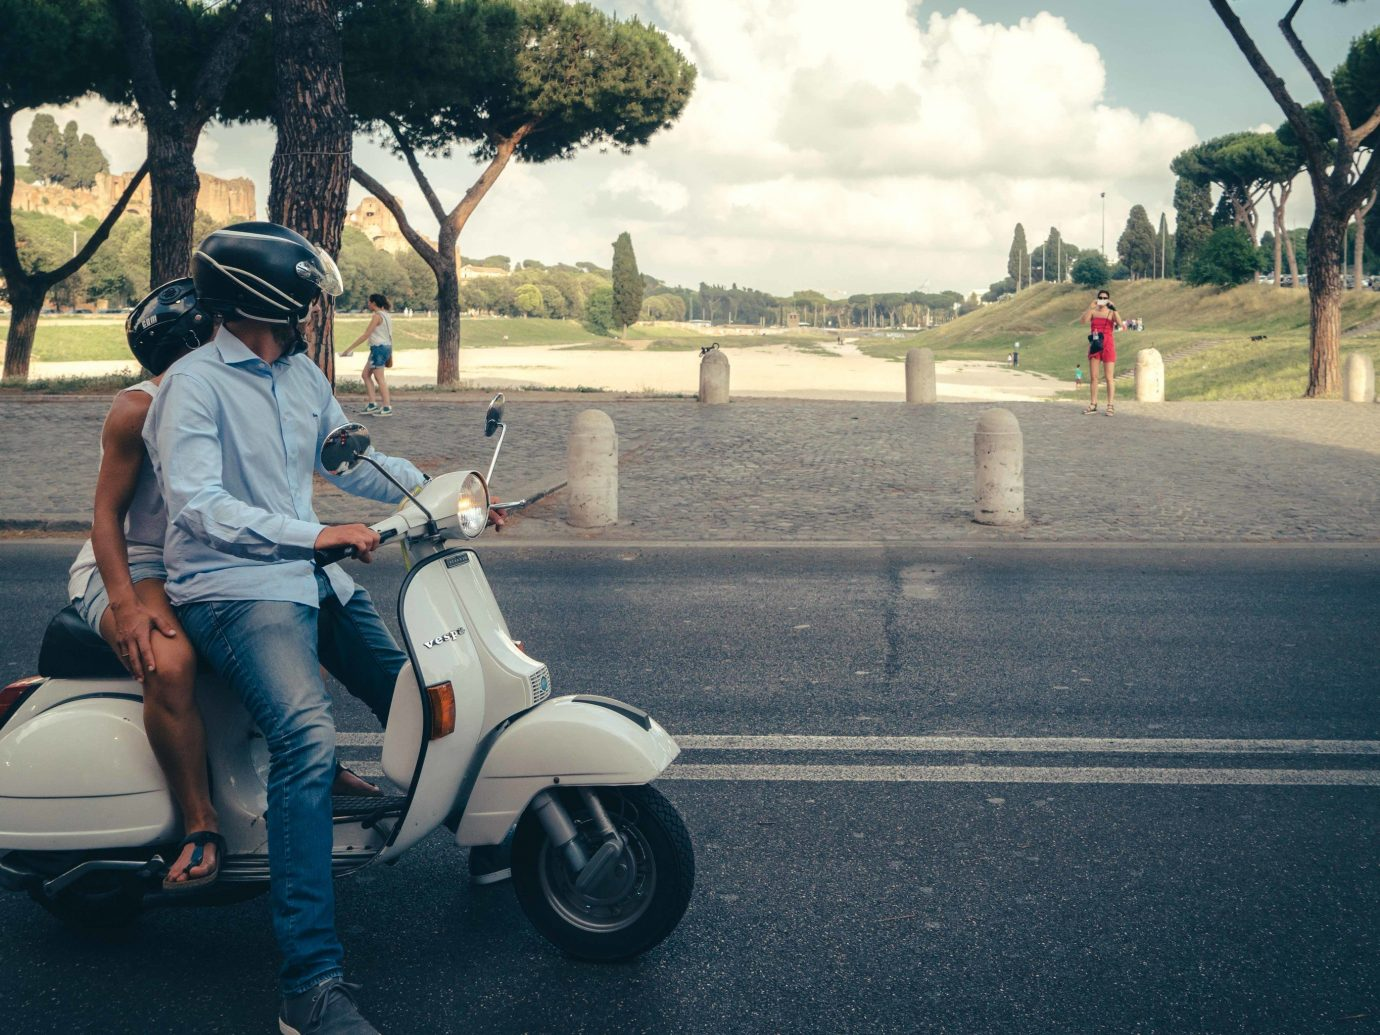 Vespa tours of Rome